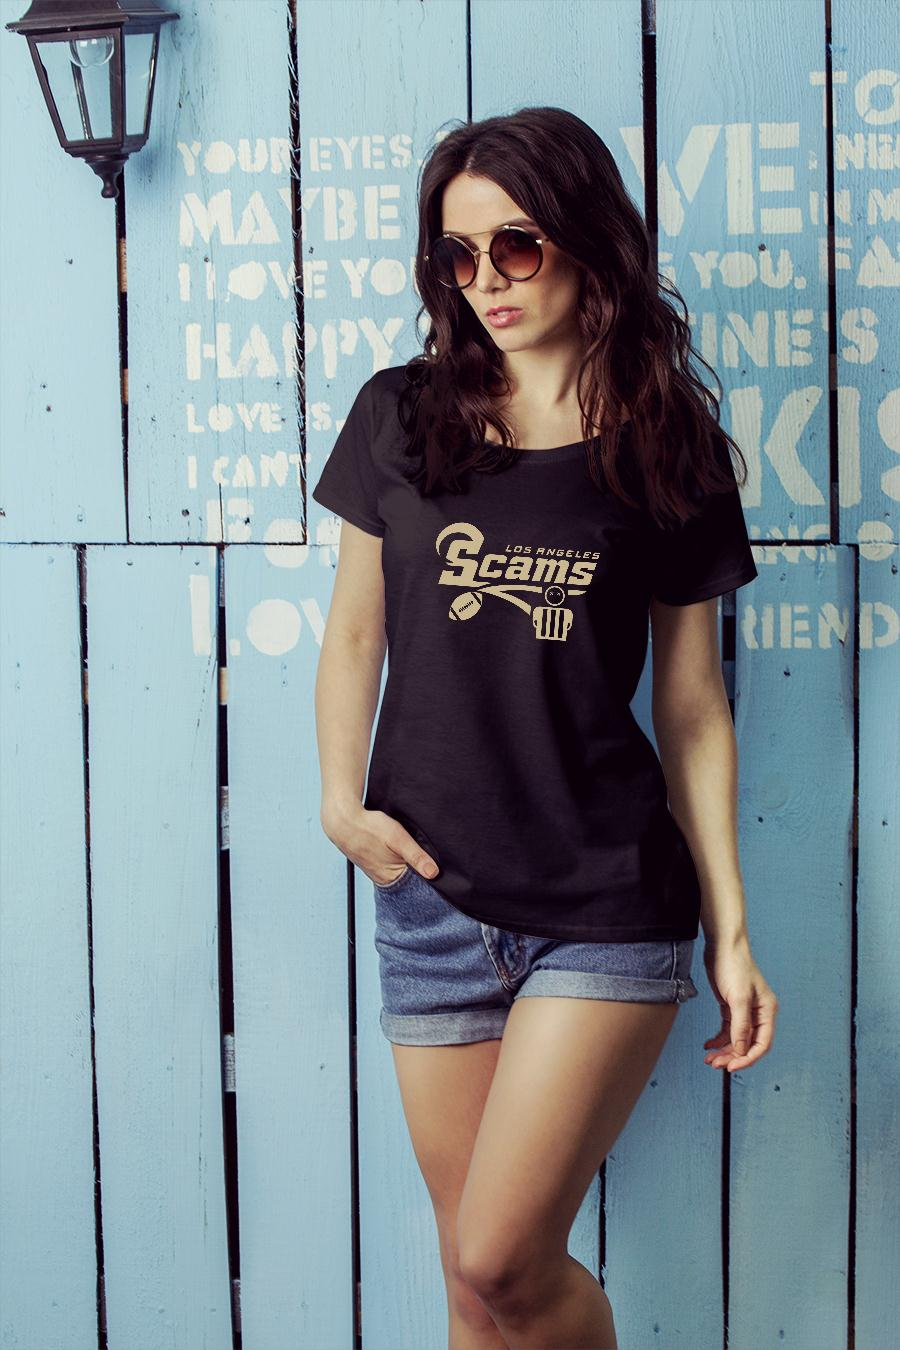 Los Angeles scams shirt ladies tee official